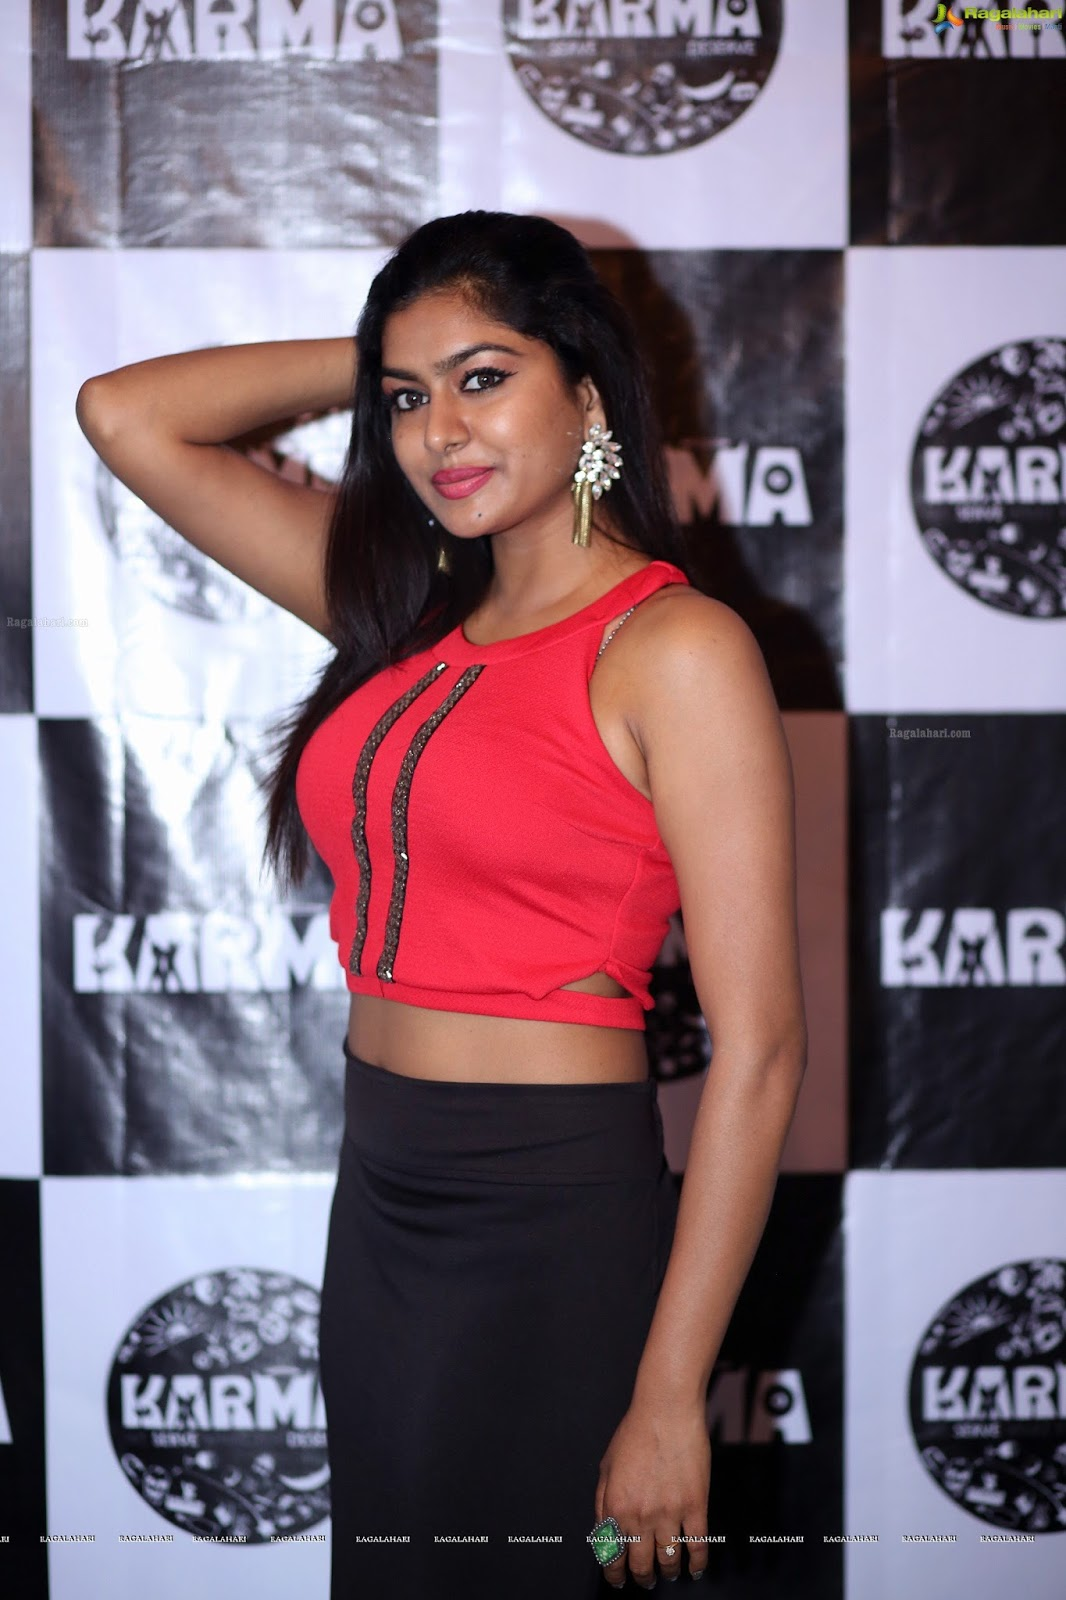 Sai Akshatha in red dress beautiful arm pits